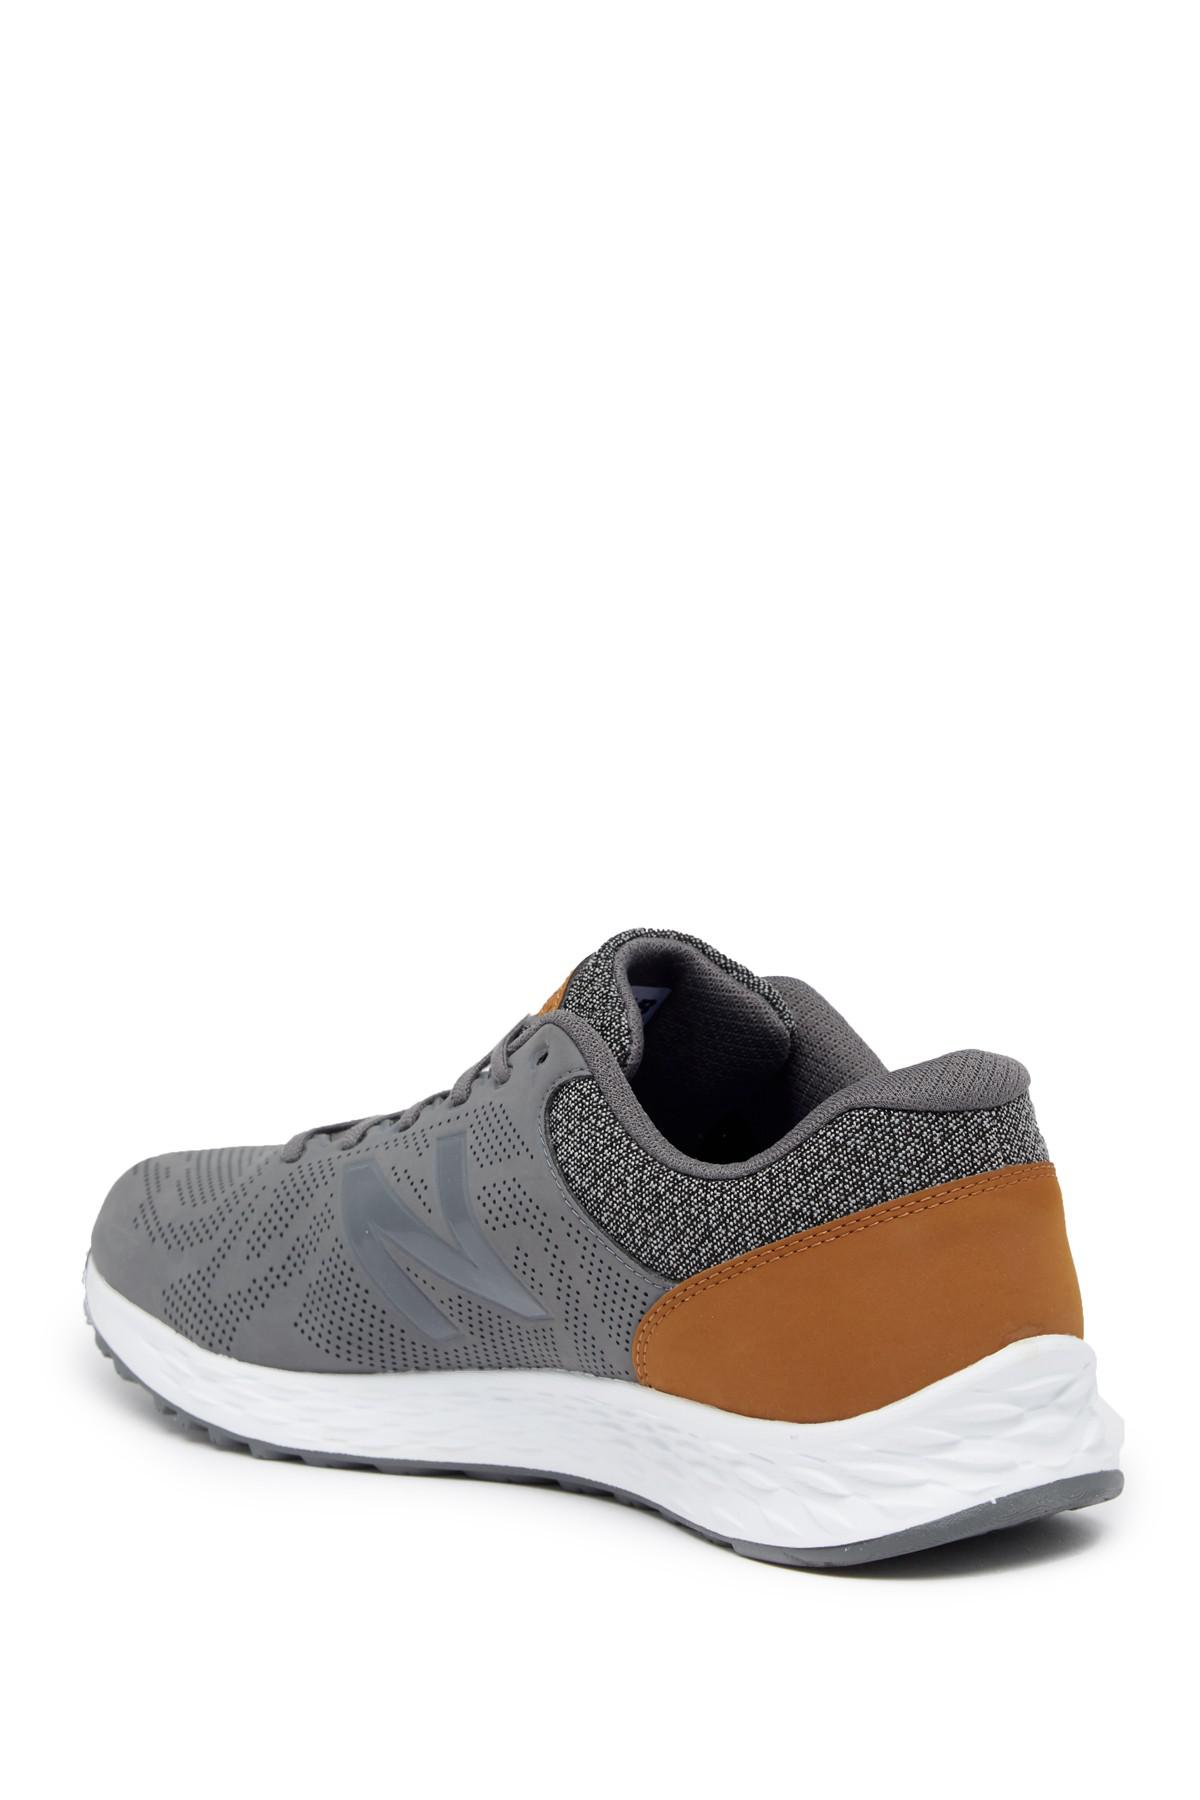 New Balance Arishi v1 Luxe Athletic Sneaker - Multiple Widths Available c0GG64K25p